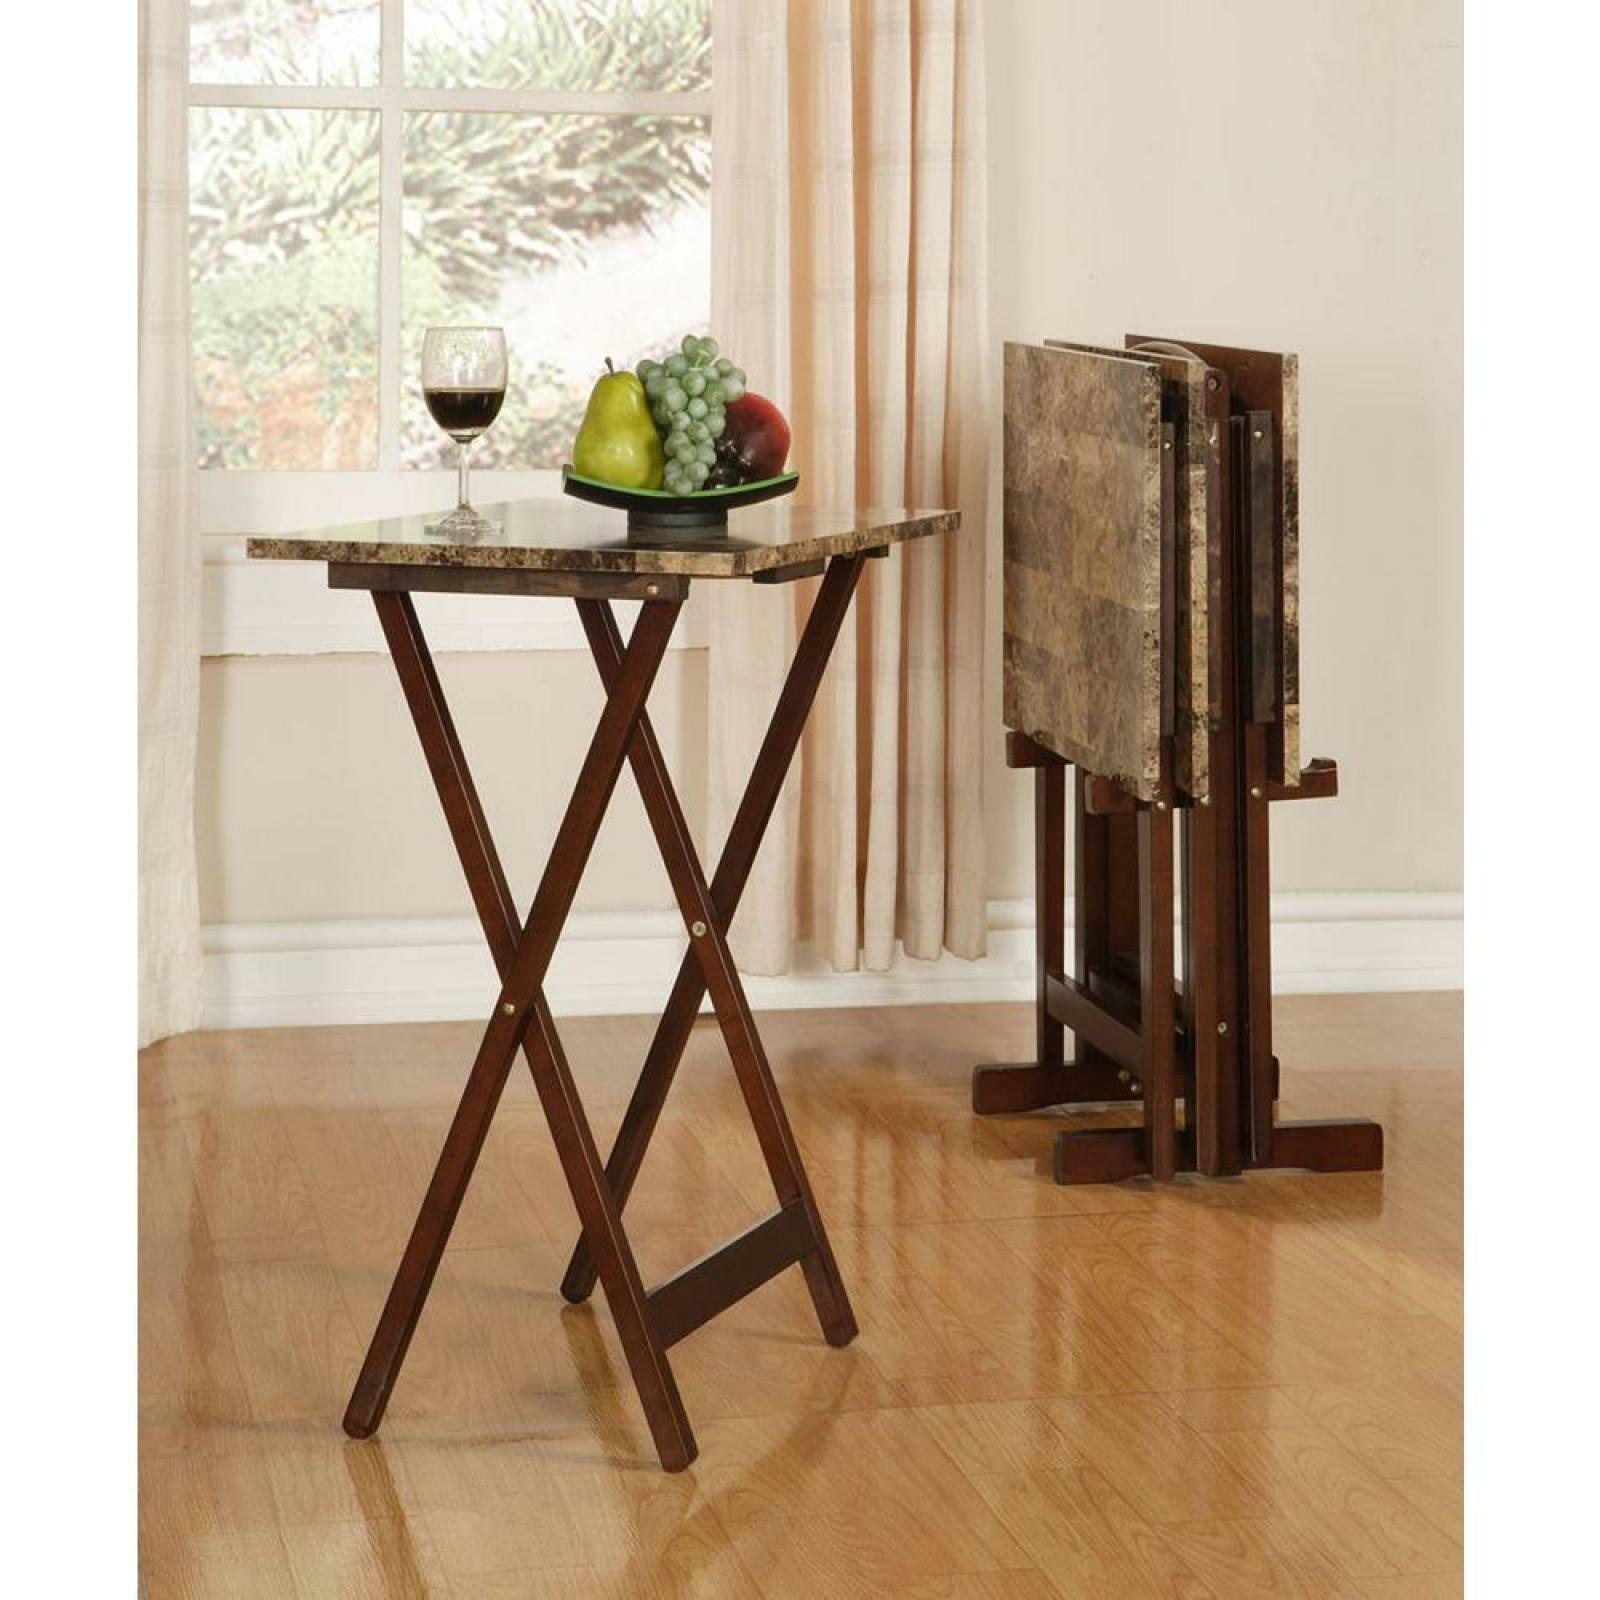 Details About Tray Table Set Faux Marble Brown Tv Dinner Living Room Folding Linon Home Decor